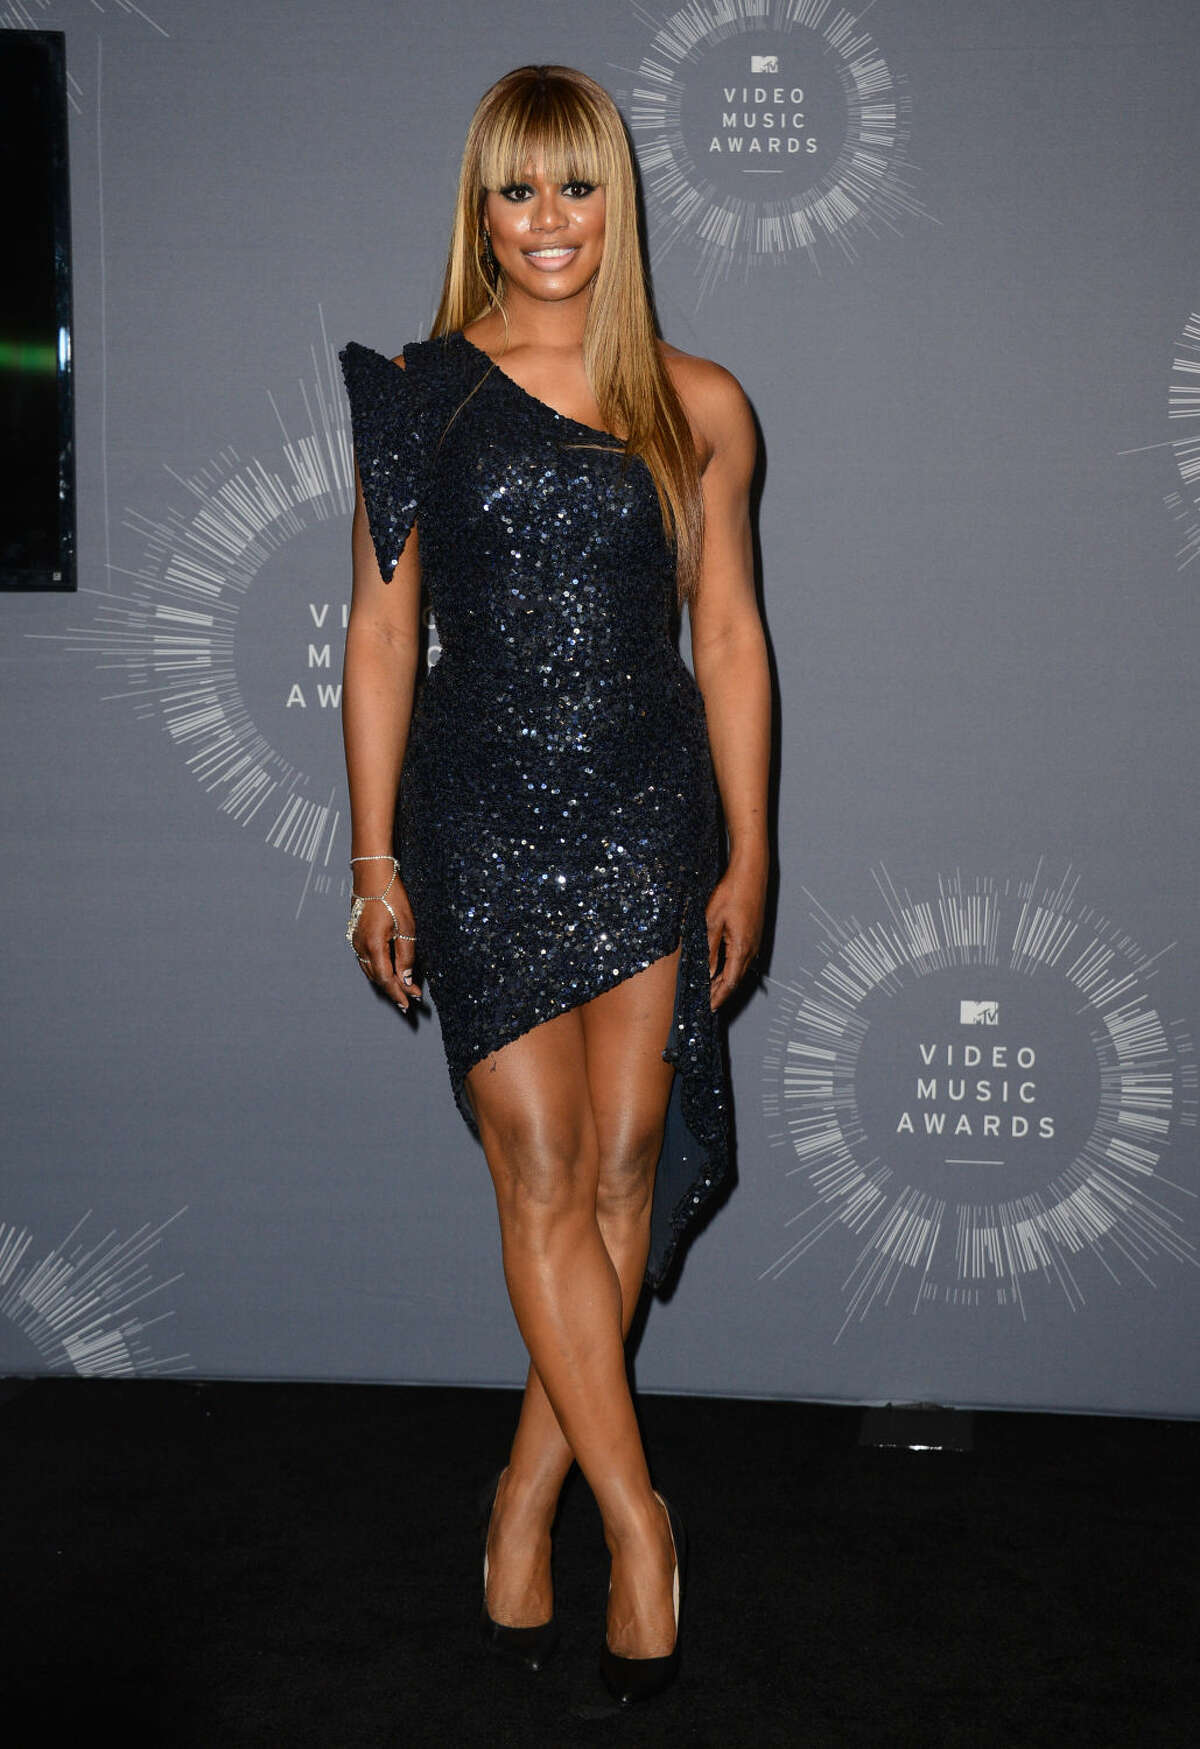 Laverne Cox poses in the press room at the MTV Video Music Awards at The Forum on Sunday, Aug. 24, 2014, in Inglewood, Calif. (Photo by Jordan Strauss/Invision/AP)